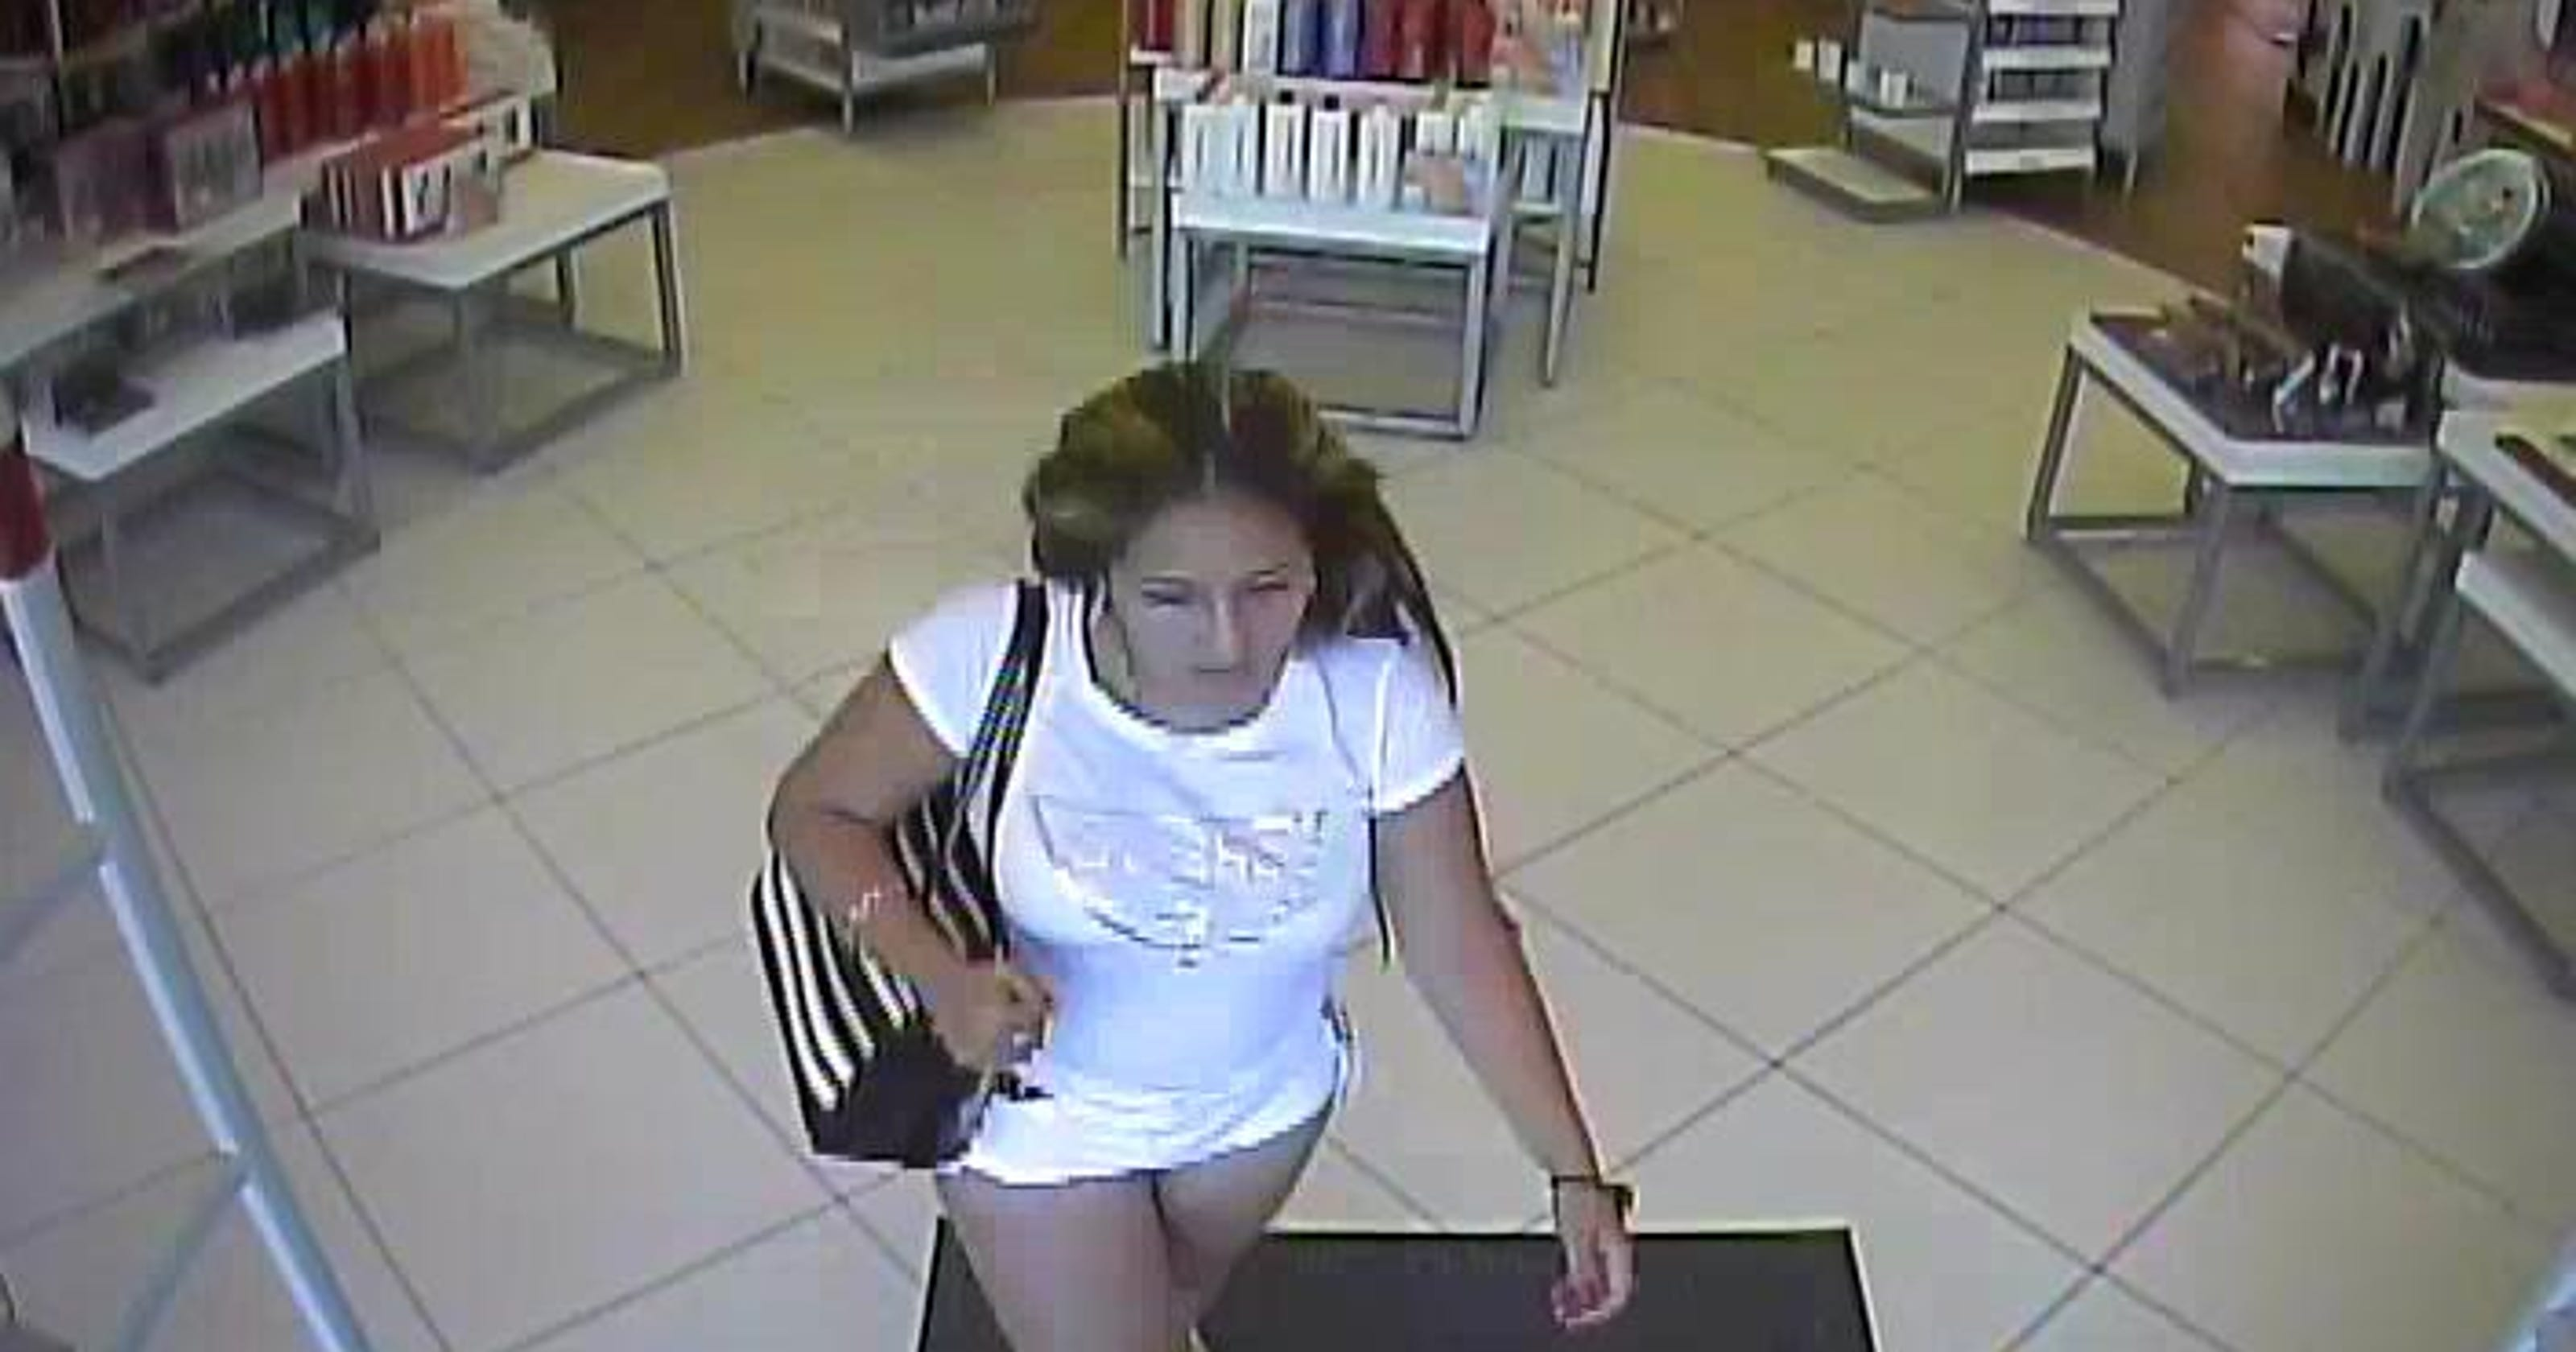 176e7611 4 accused of $2K+ beauty store theft